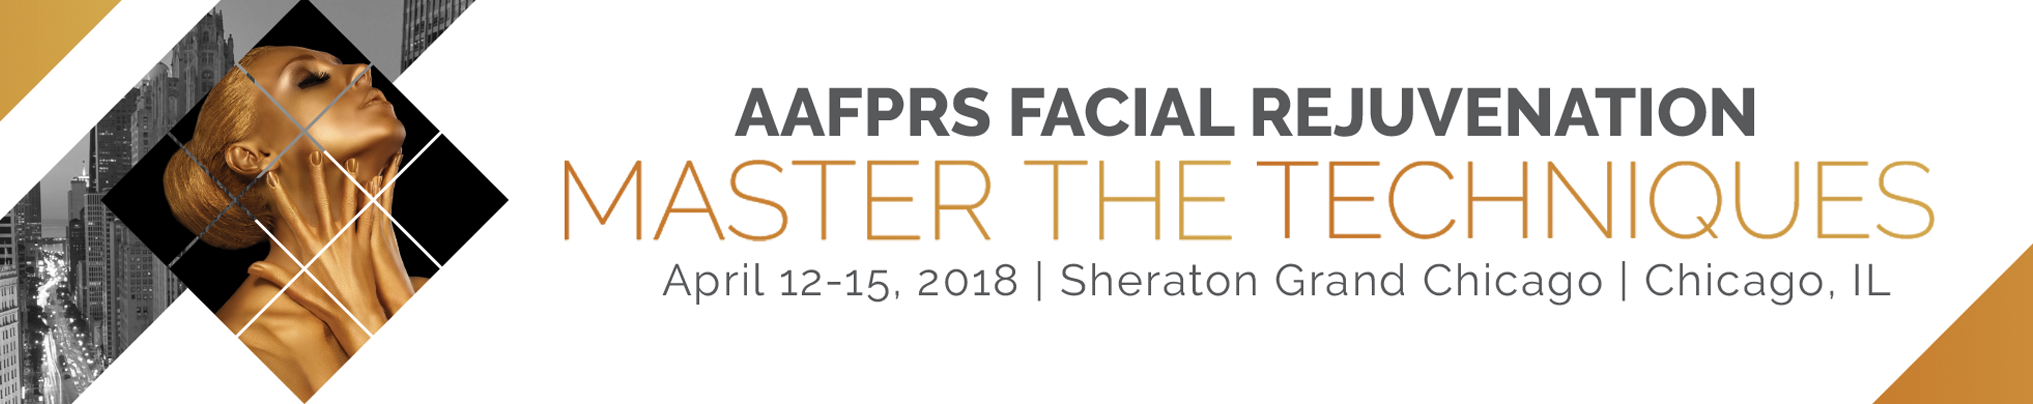 2018 Facial Rejuvenation - Exhibitor Application